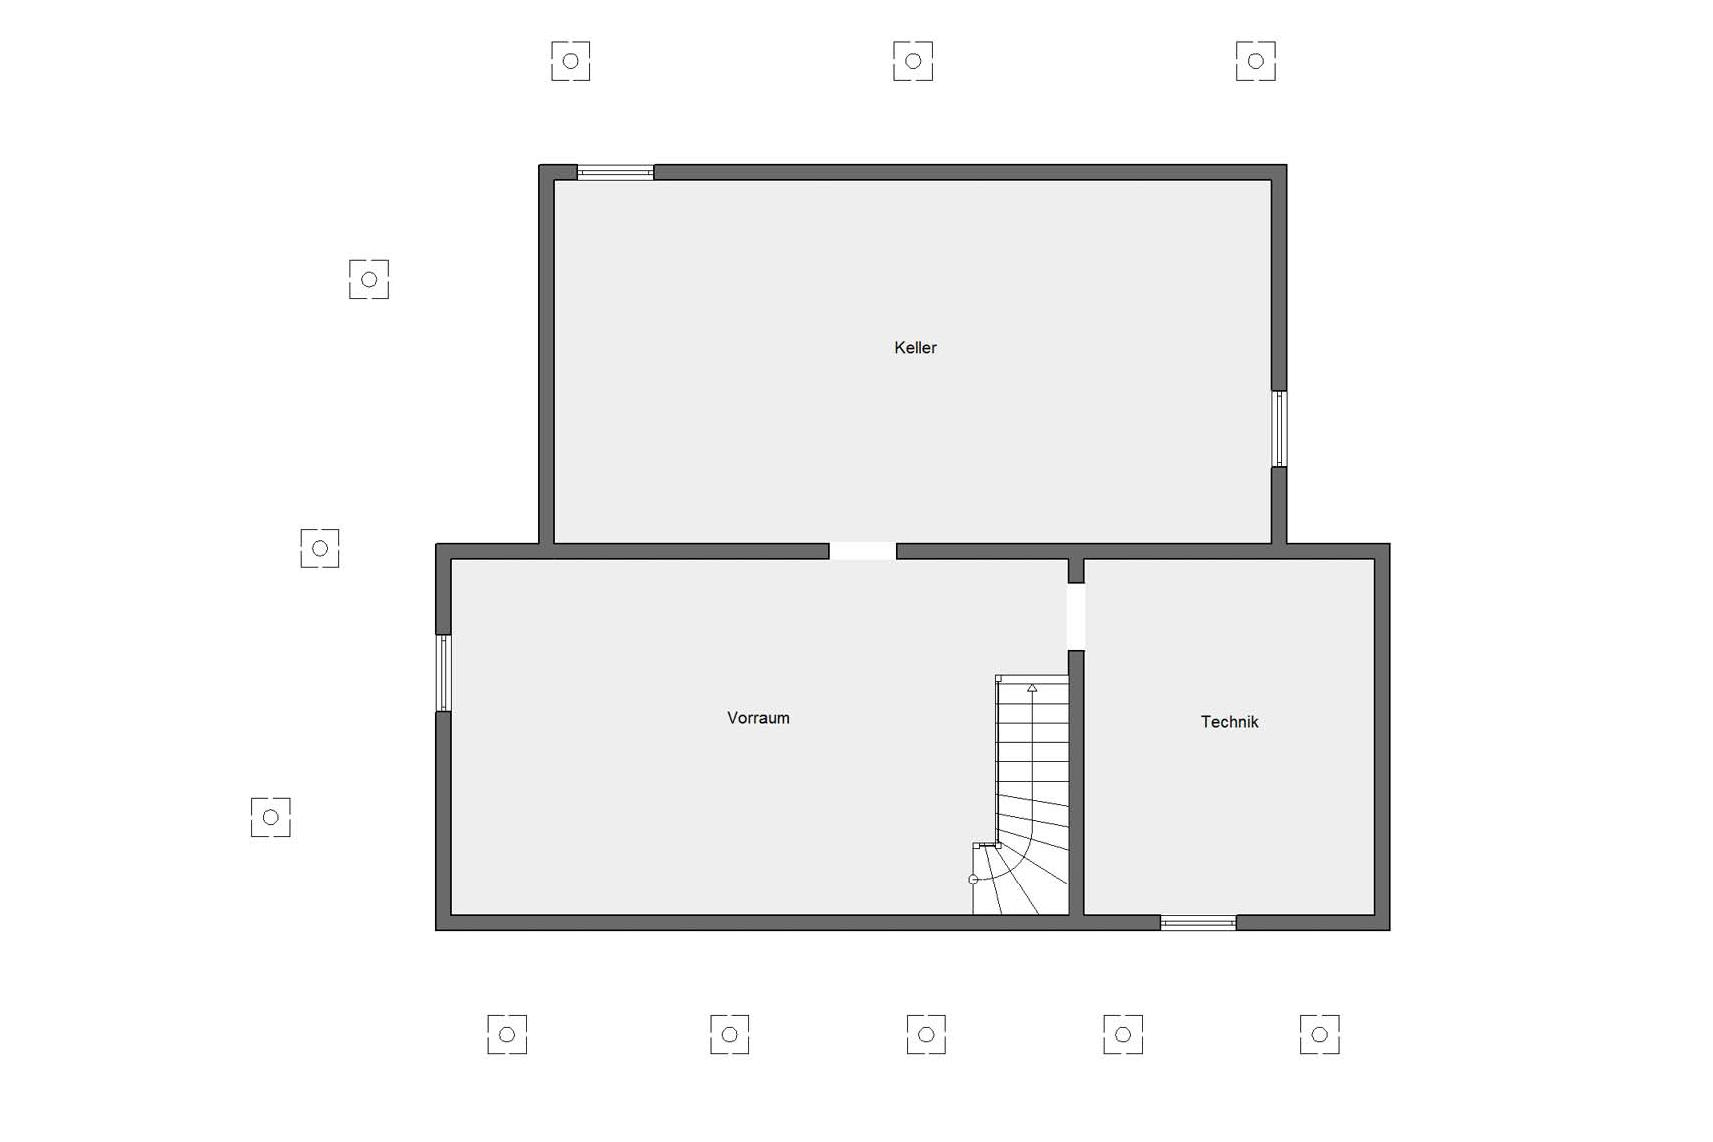 Plan d'étage cave E 15-199.1 Youg Family Home 2